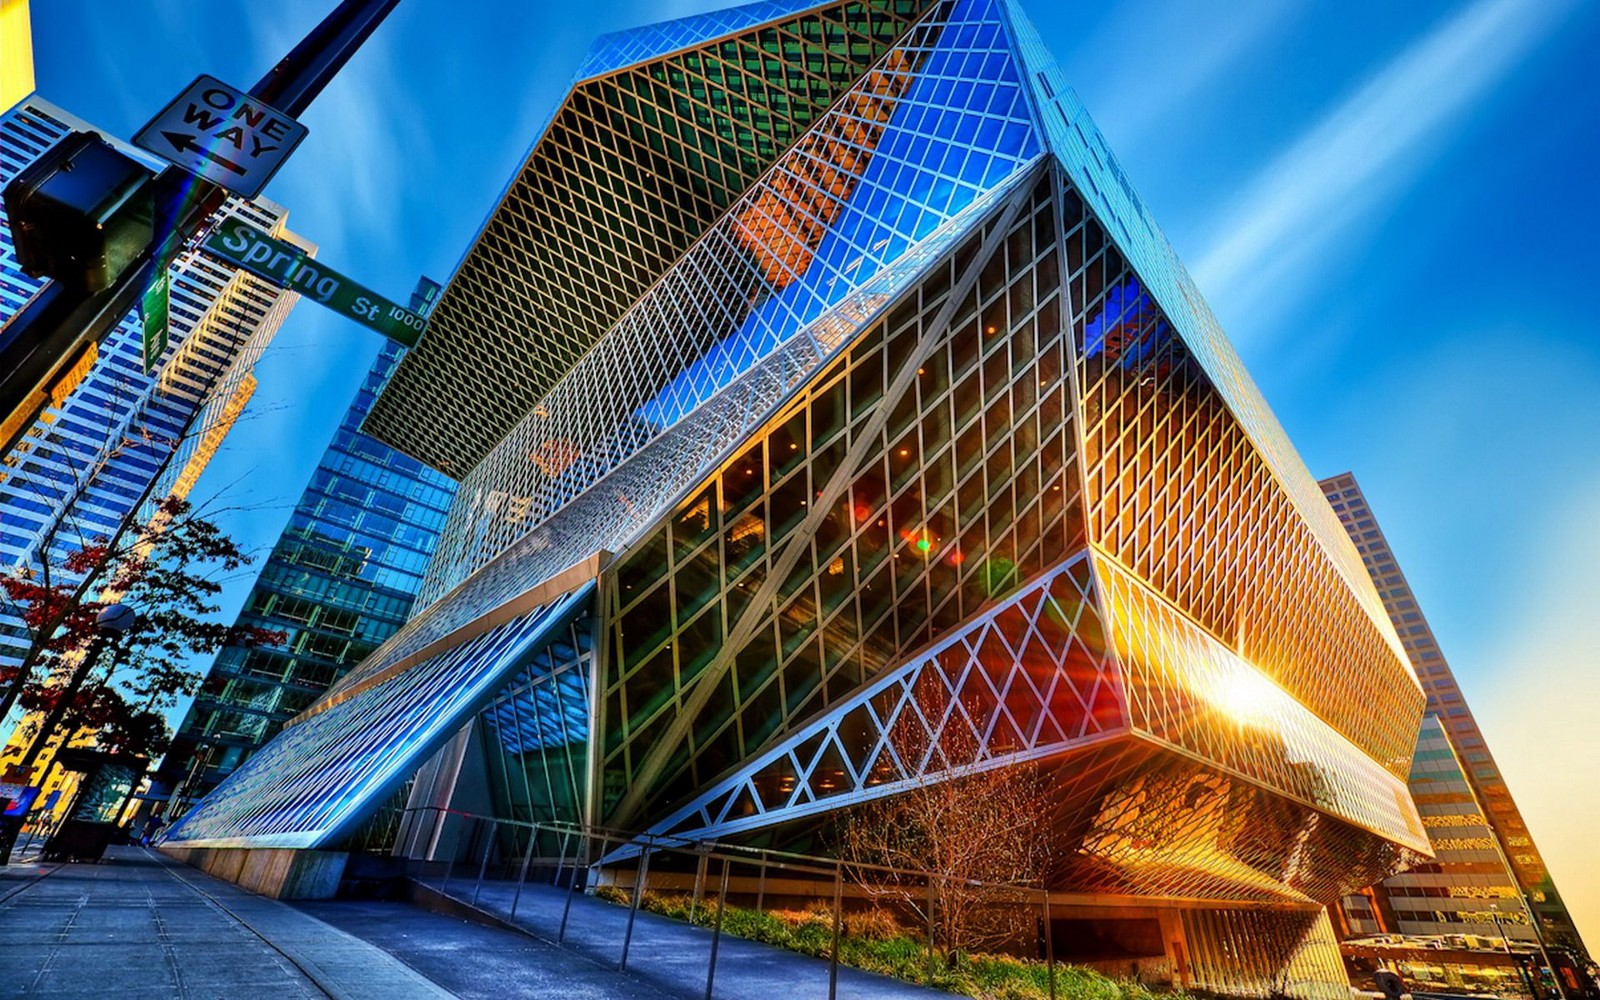 Modern Architectural Photography Intended Also Because Modern Buildings Are Often Build In Very Close To One Another You Can Crop Tightly On The Building That Help Your Photos Become More The Basic Step To Architectural Photography For Beginners